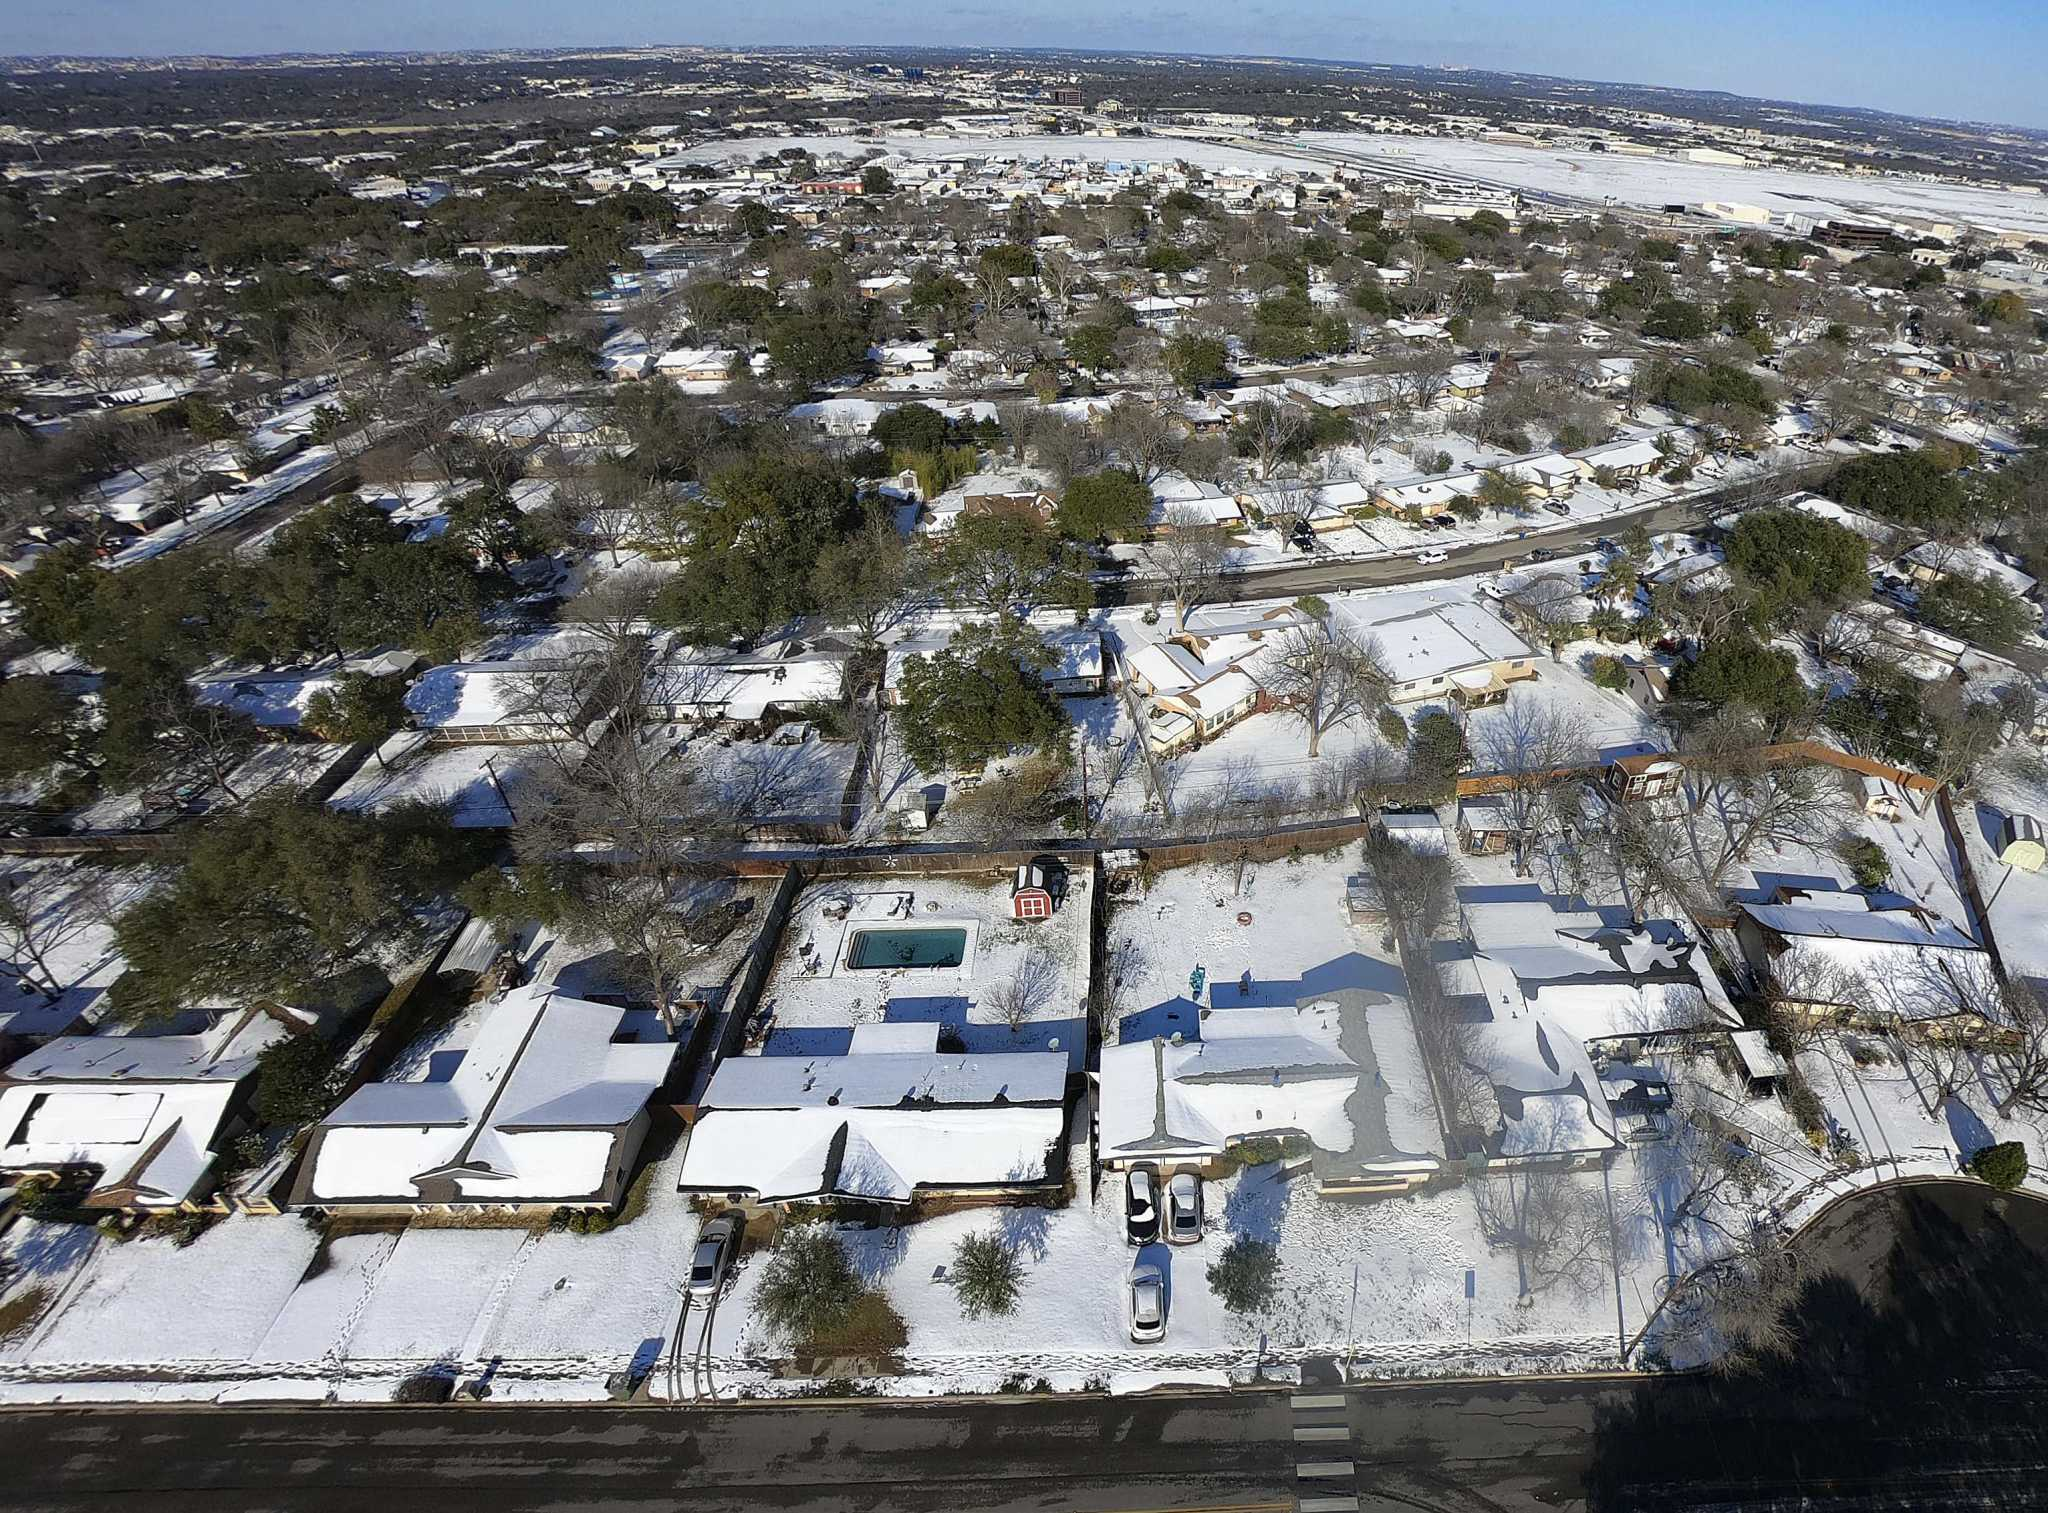 AT&T Wireless has its Texas customers covered during winter storm